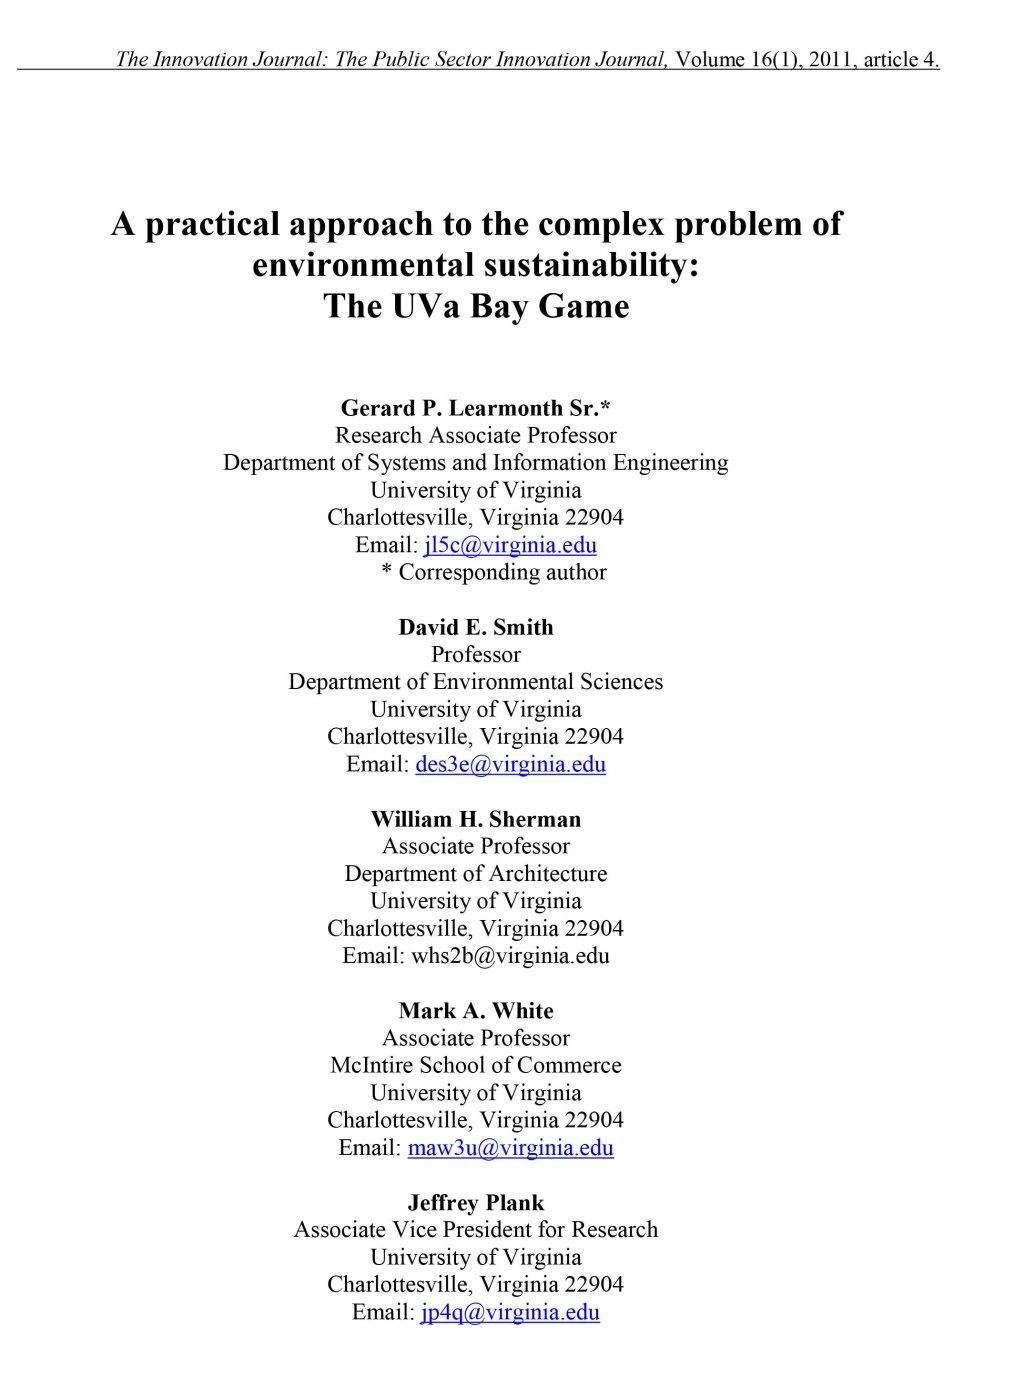 A practical approach to the complex problem of environmental sus